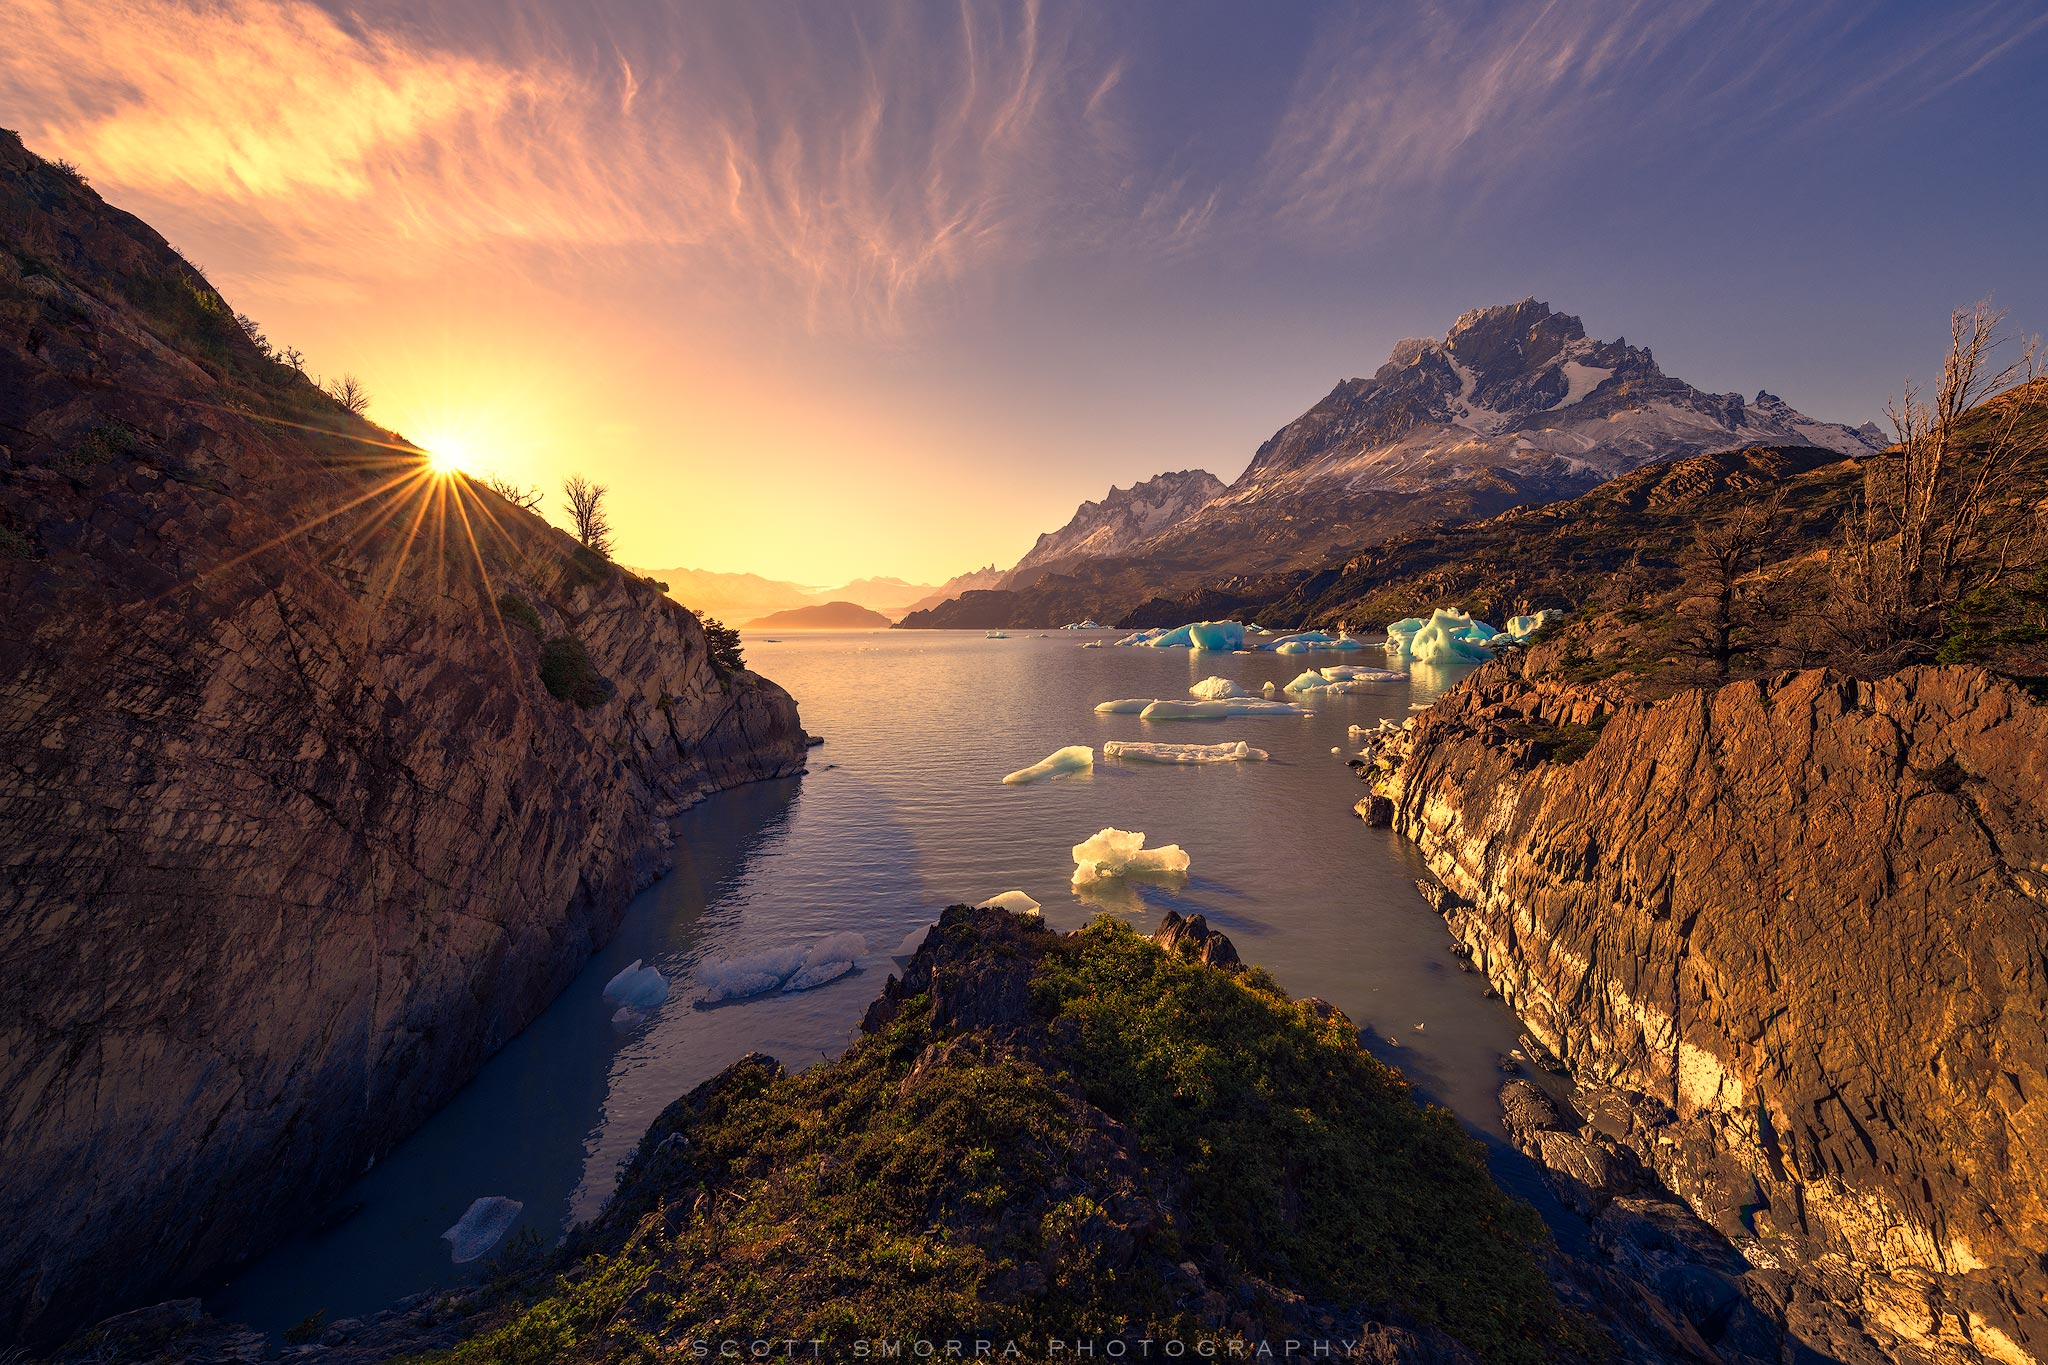 Fine Art Limited Edition of 50 - Sunset light illuminates an iceberg filled bay in Parque Nacional Torres del Paine, Chile. ©...